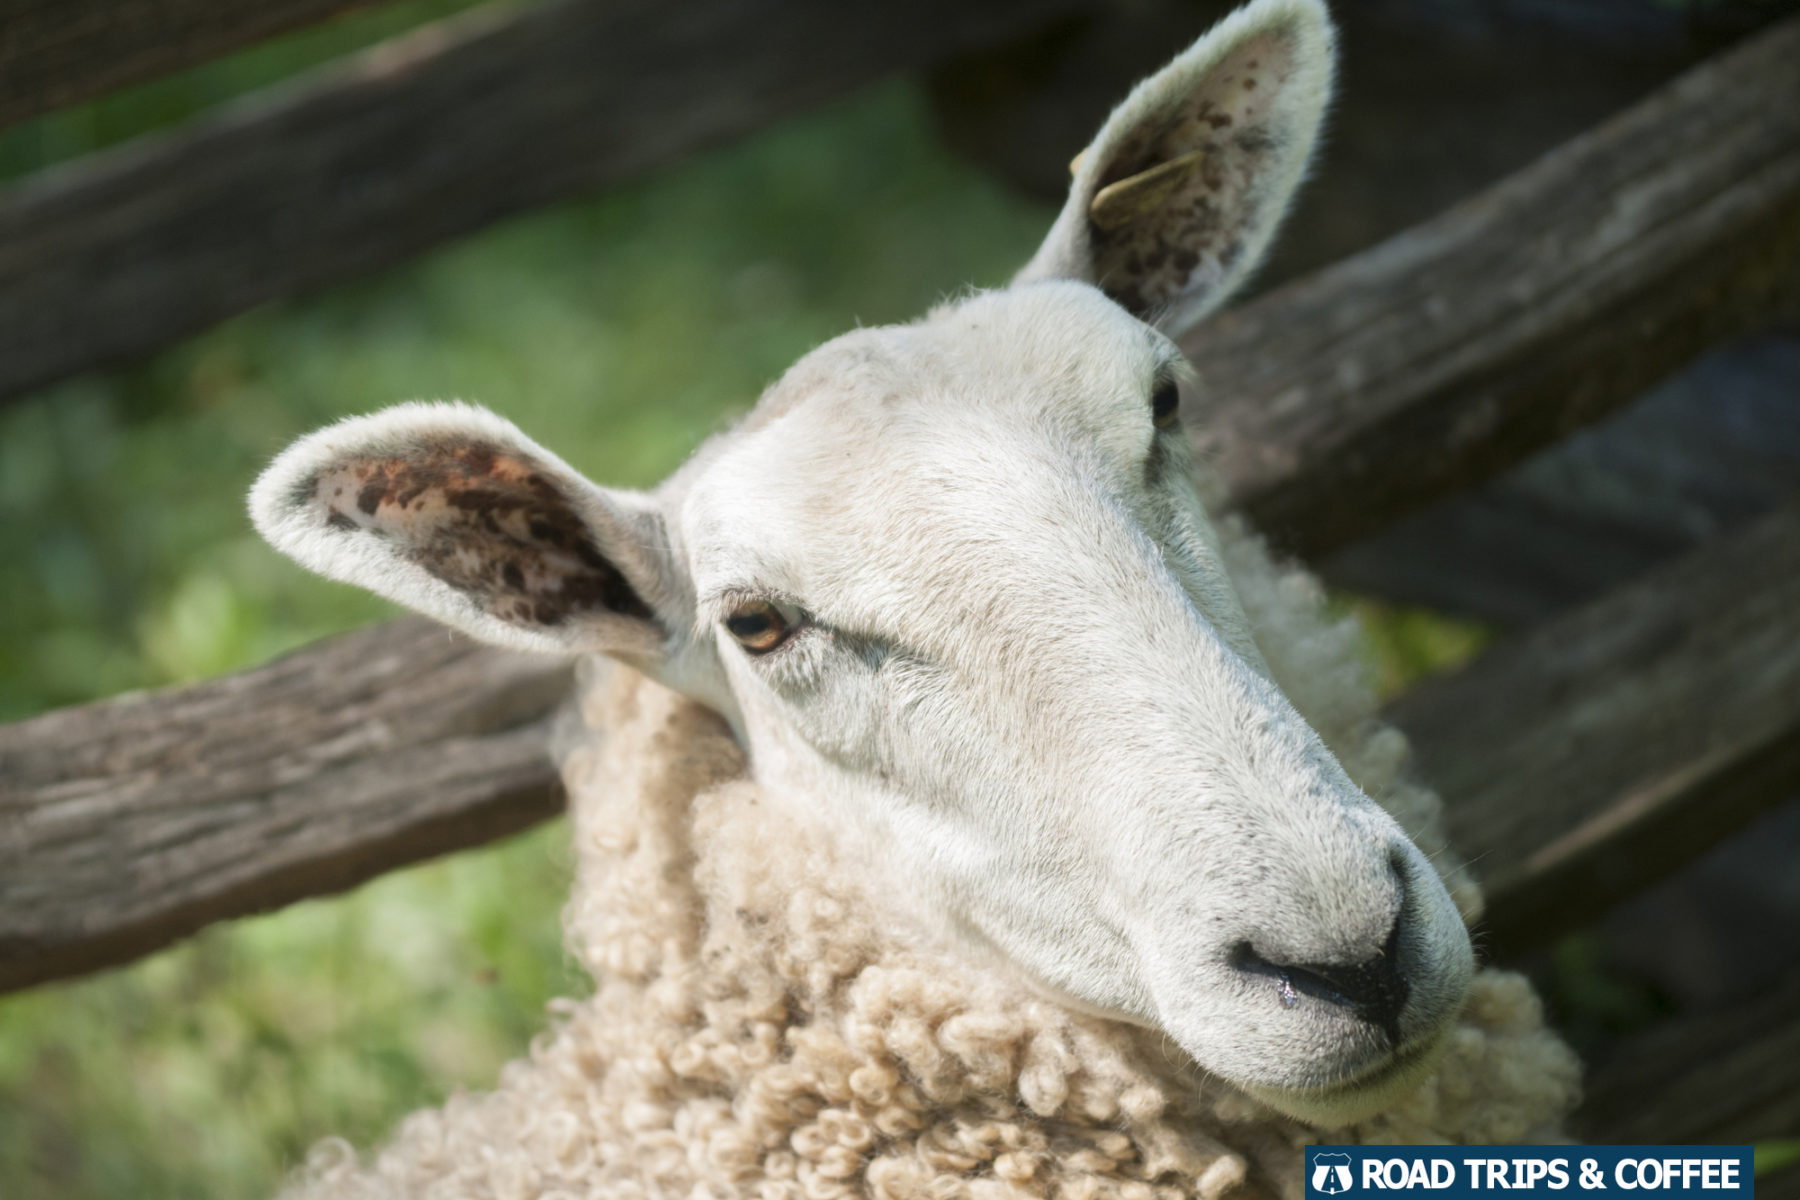 A sheep glares into the camera at Homeplace 1850s Working Farm in Land Between the Lakes National Recreation Area